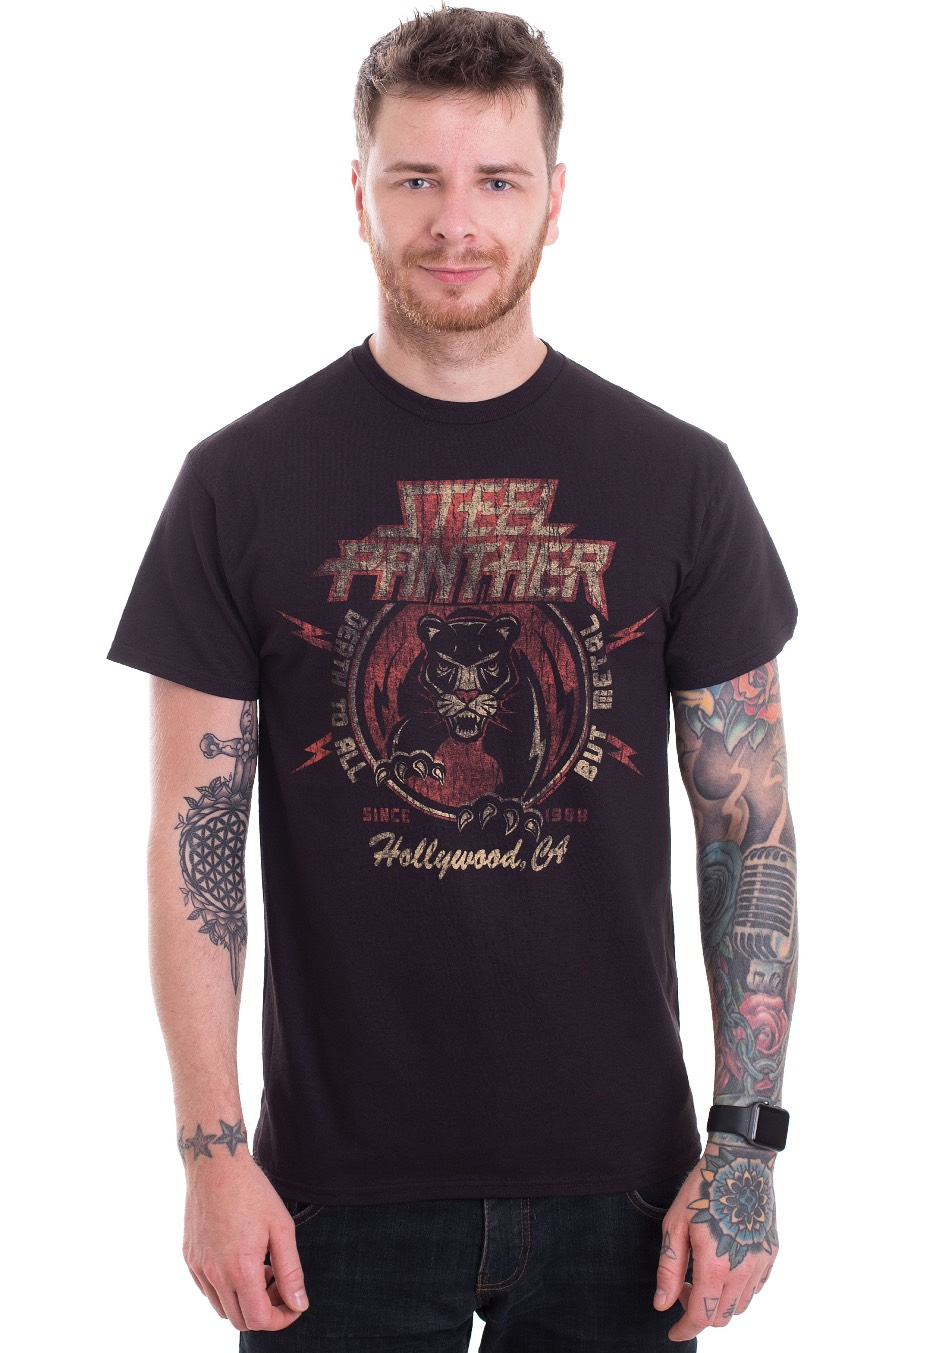 Steel Panther Tour Merchandise